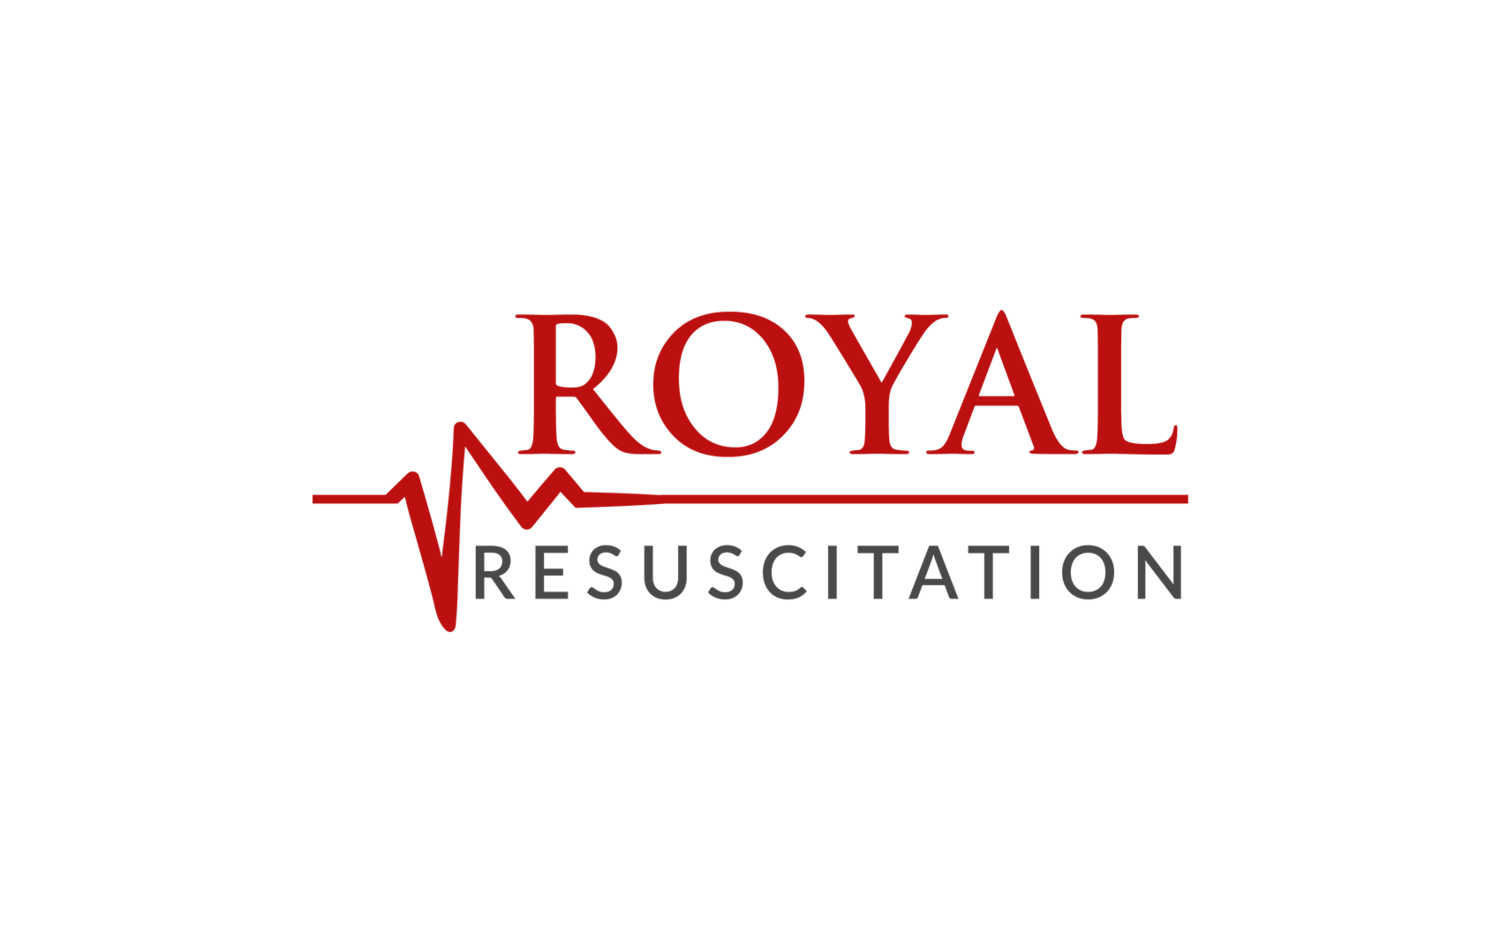 About Royal Resuscitation